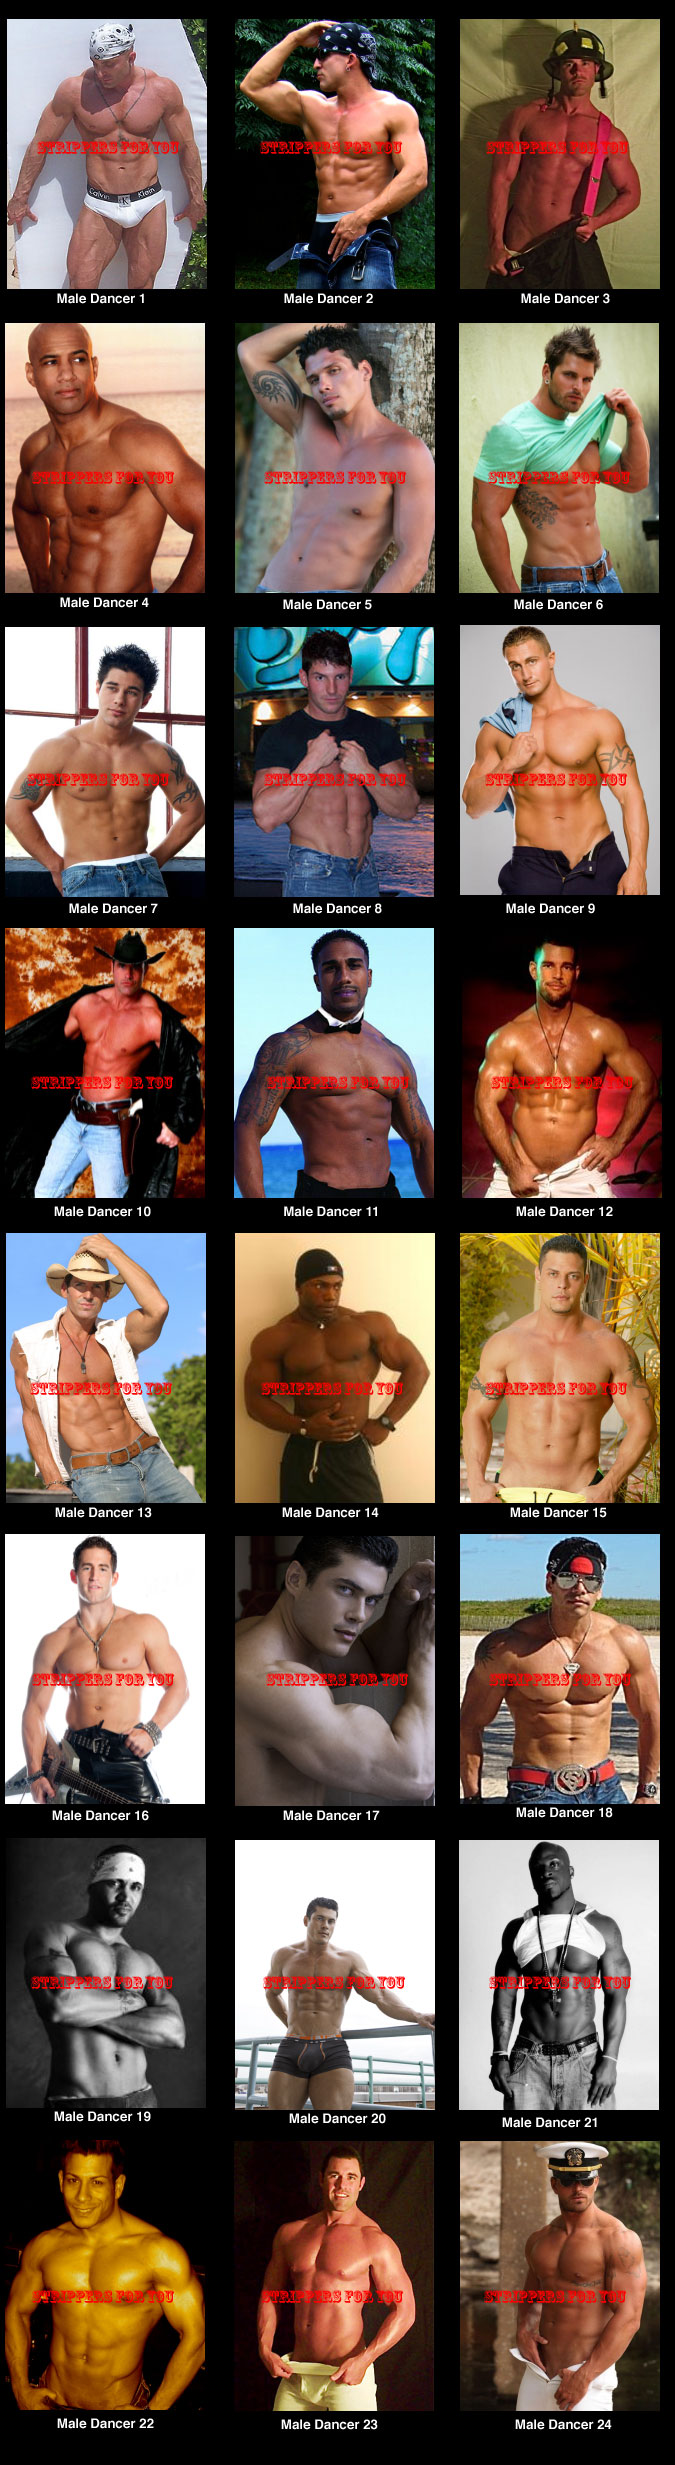 Miami male strippers